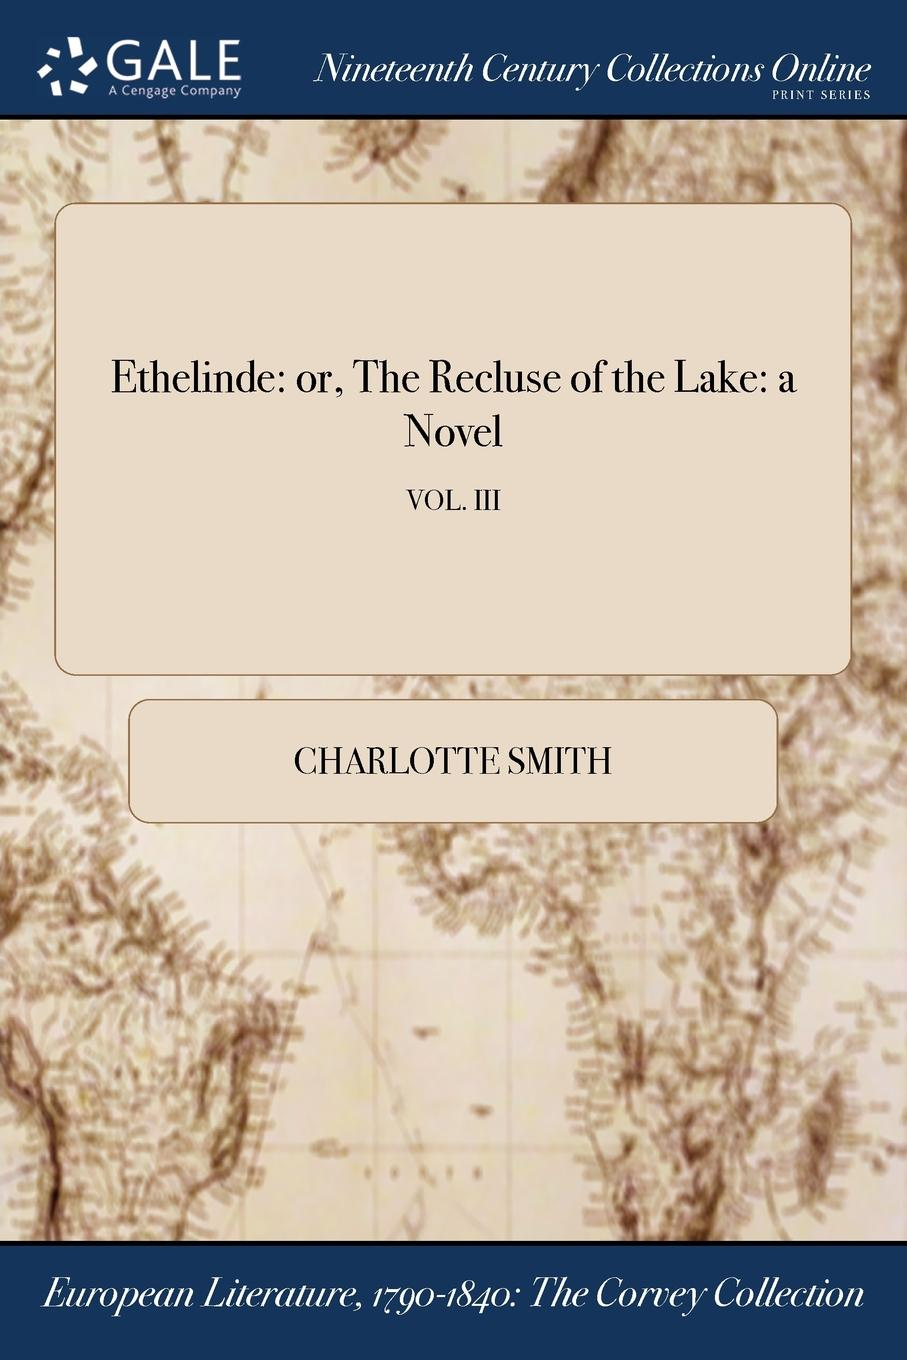 Charlotte Smith Ethelinde. or, The Recluse of the Lake: a Novel; VOL. III